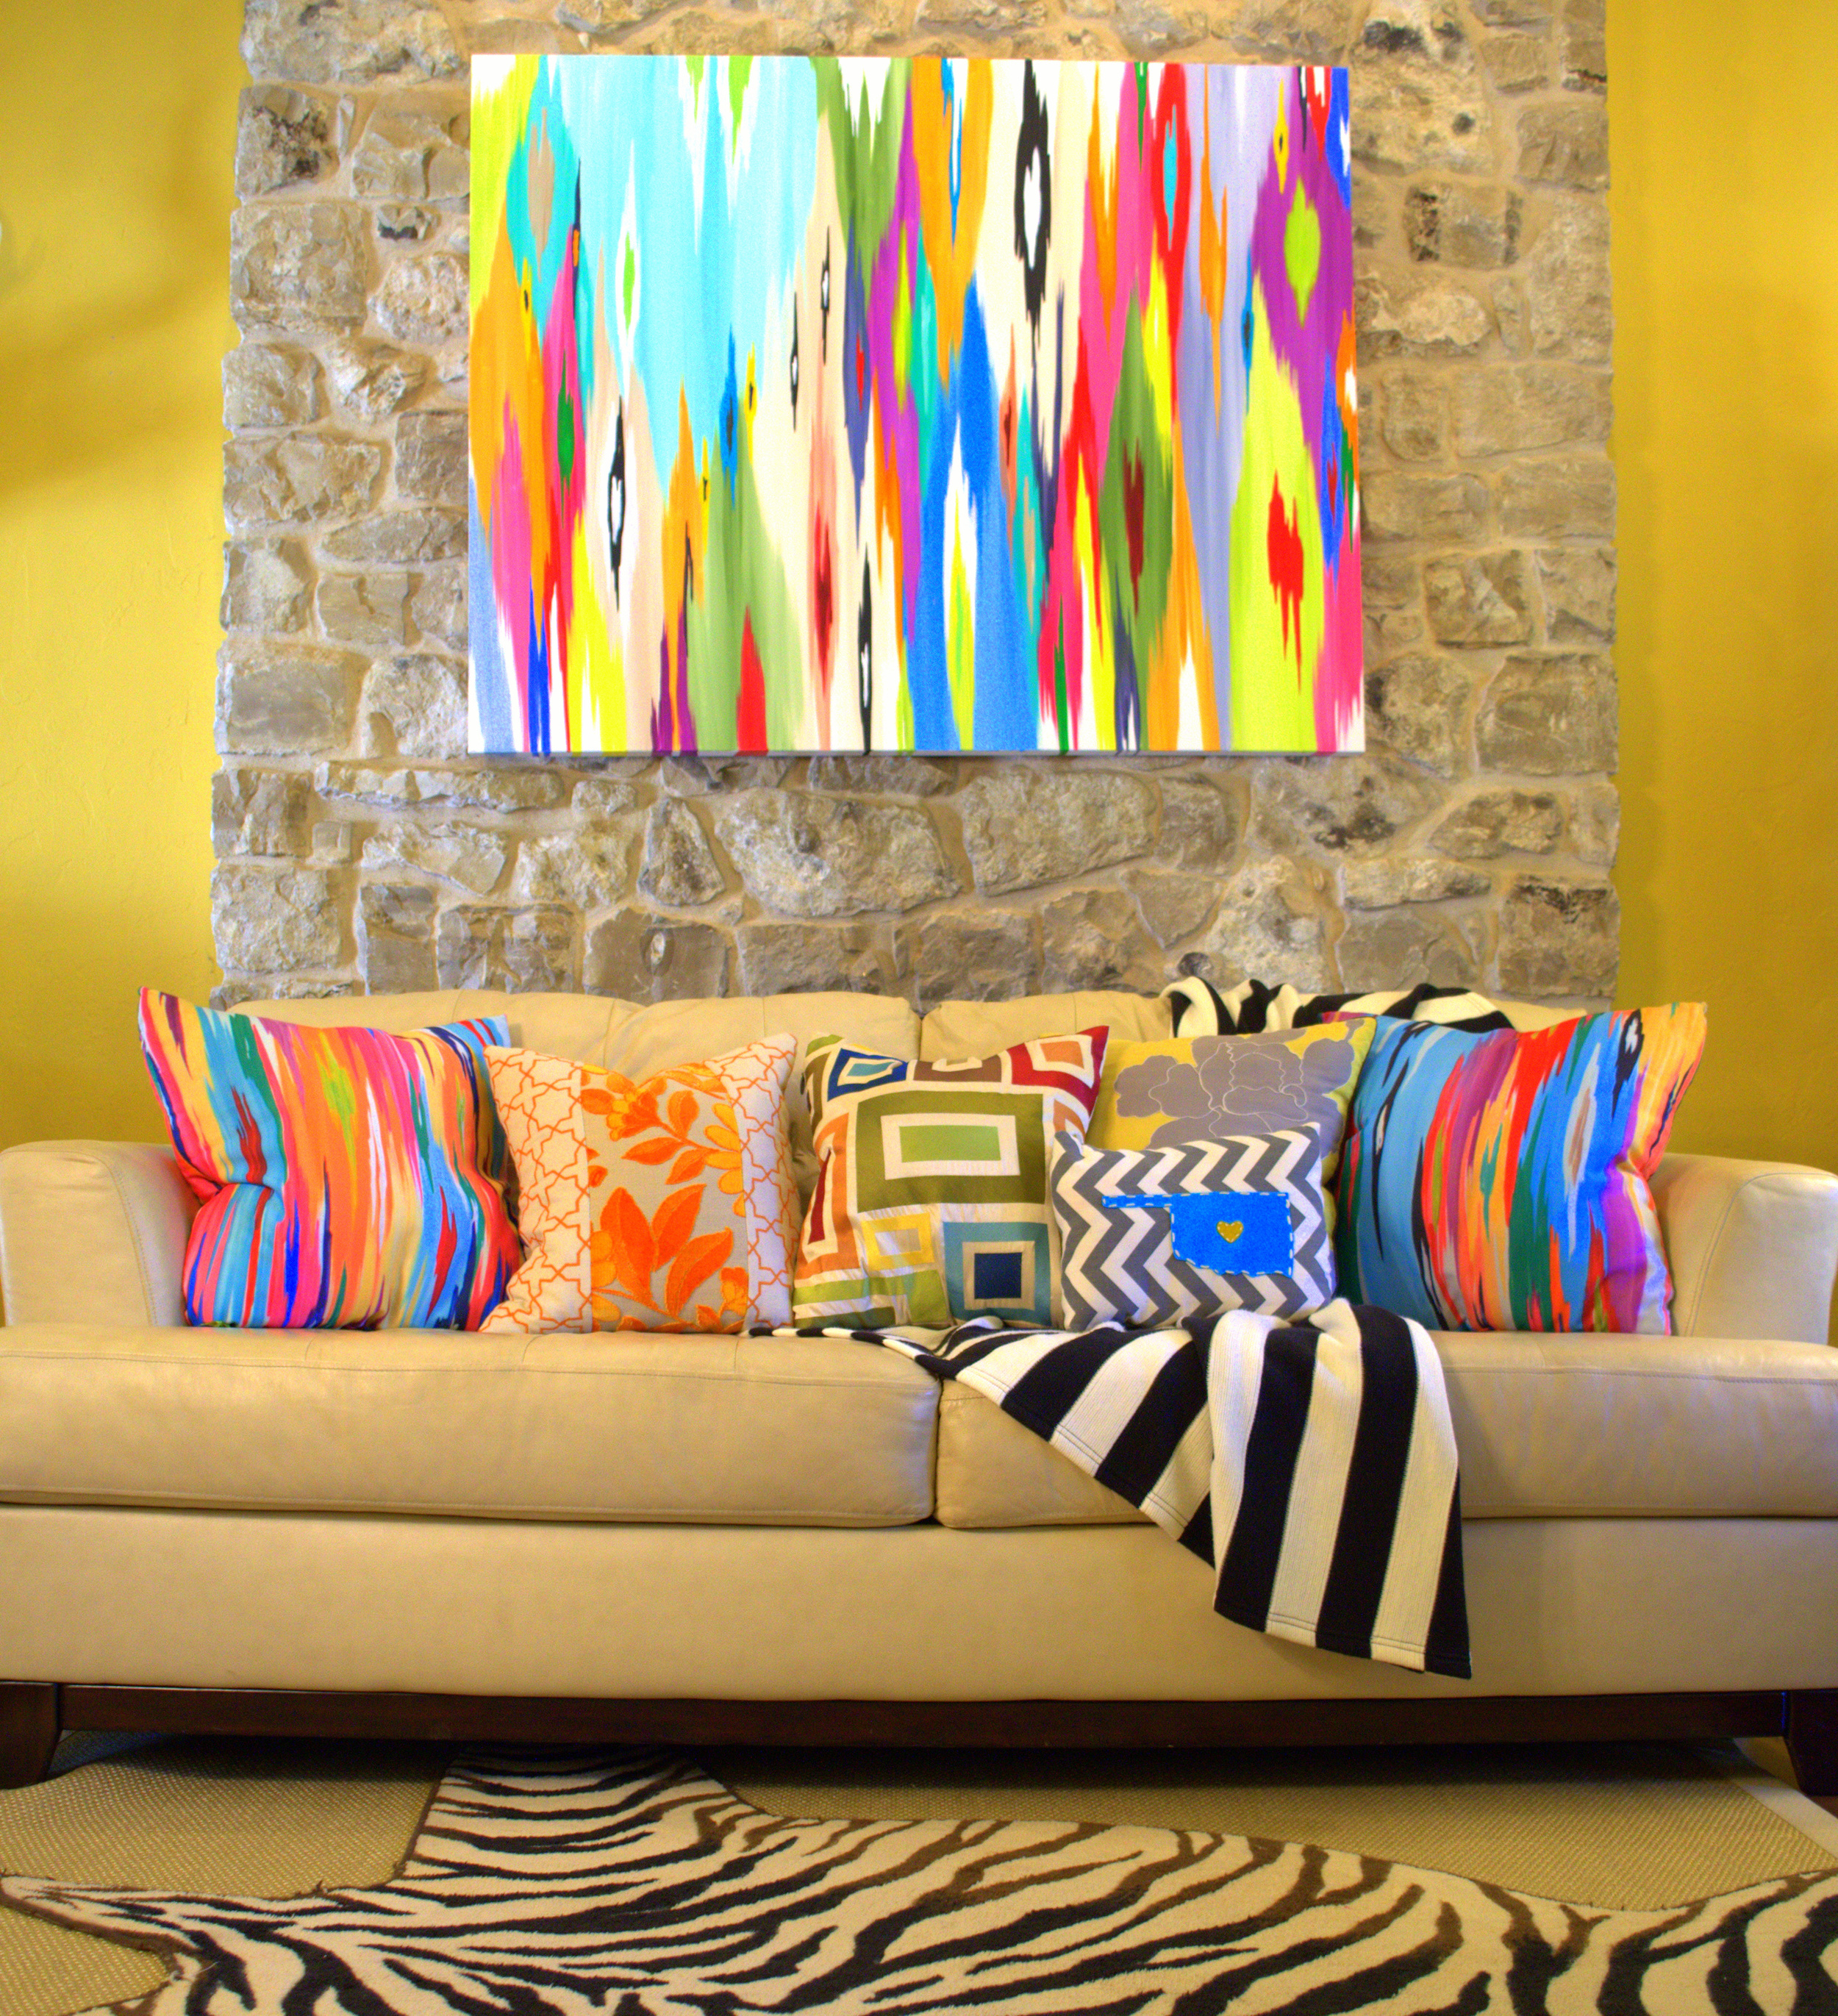 Sofa Pillows Painting.jpg